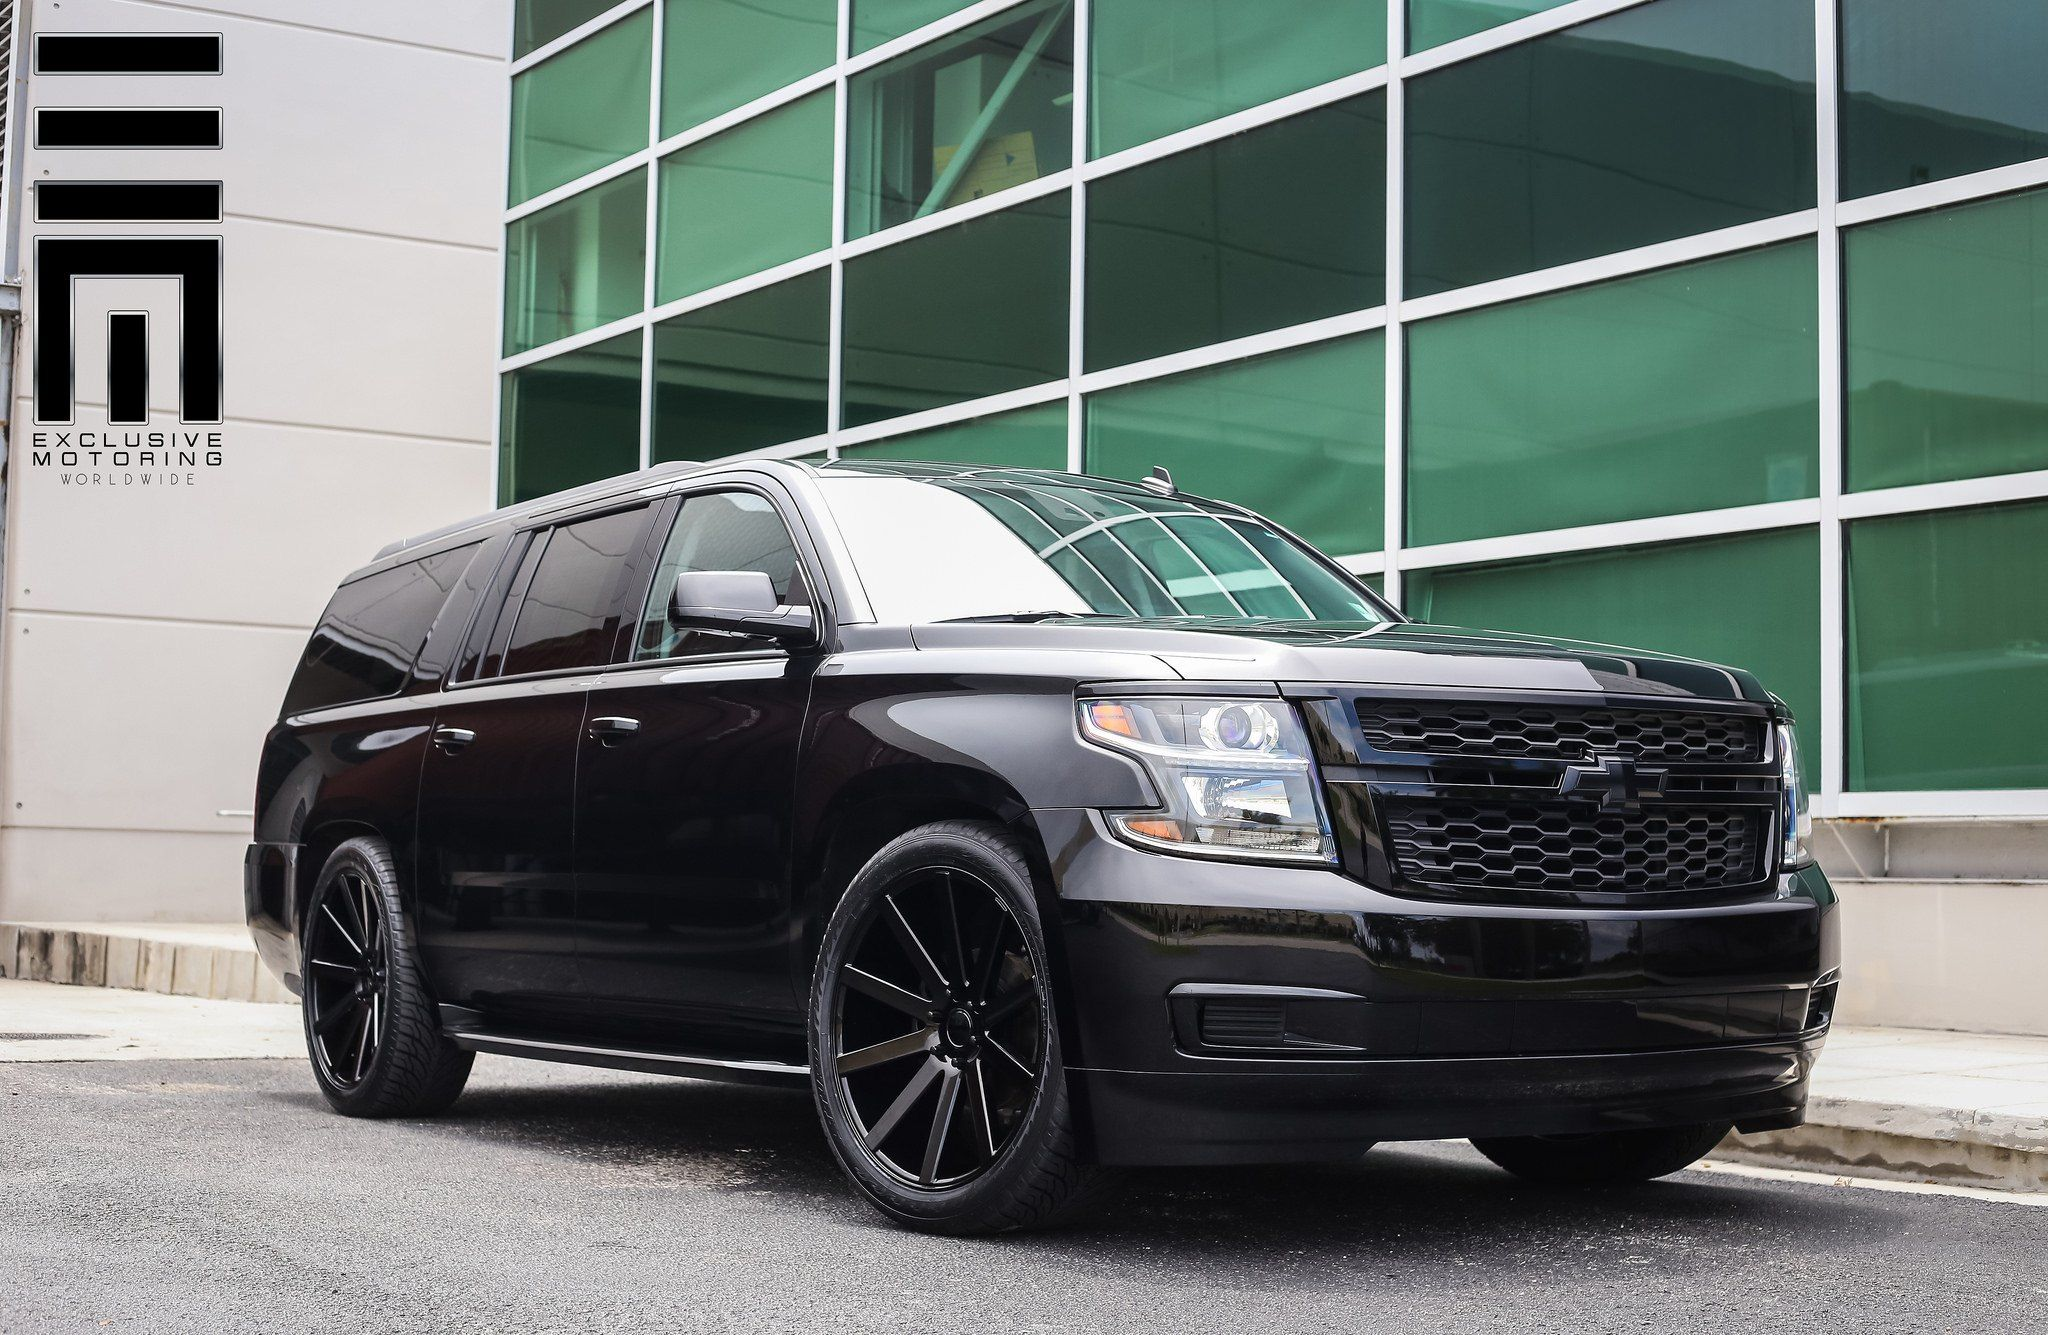 All Black Chevy Suburban On Custom Wheels By Exclusive Motoring Chevy Suburban Custom Wheels Chevy